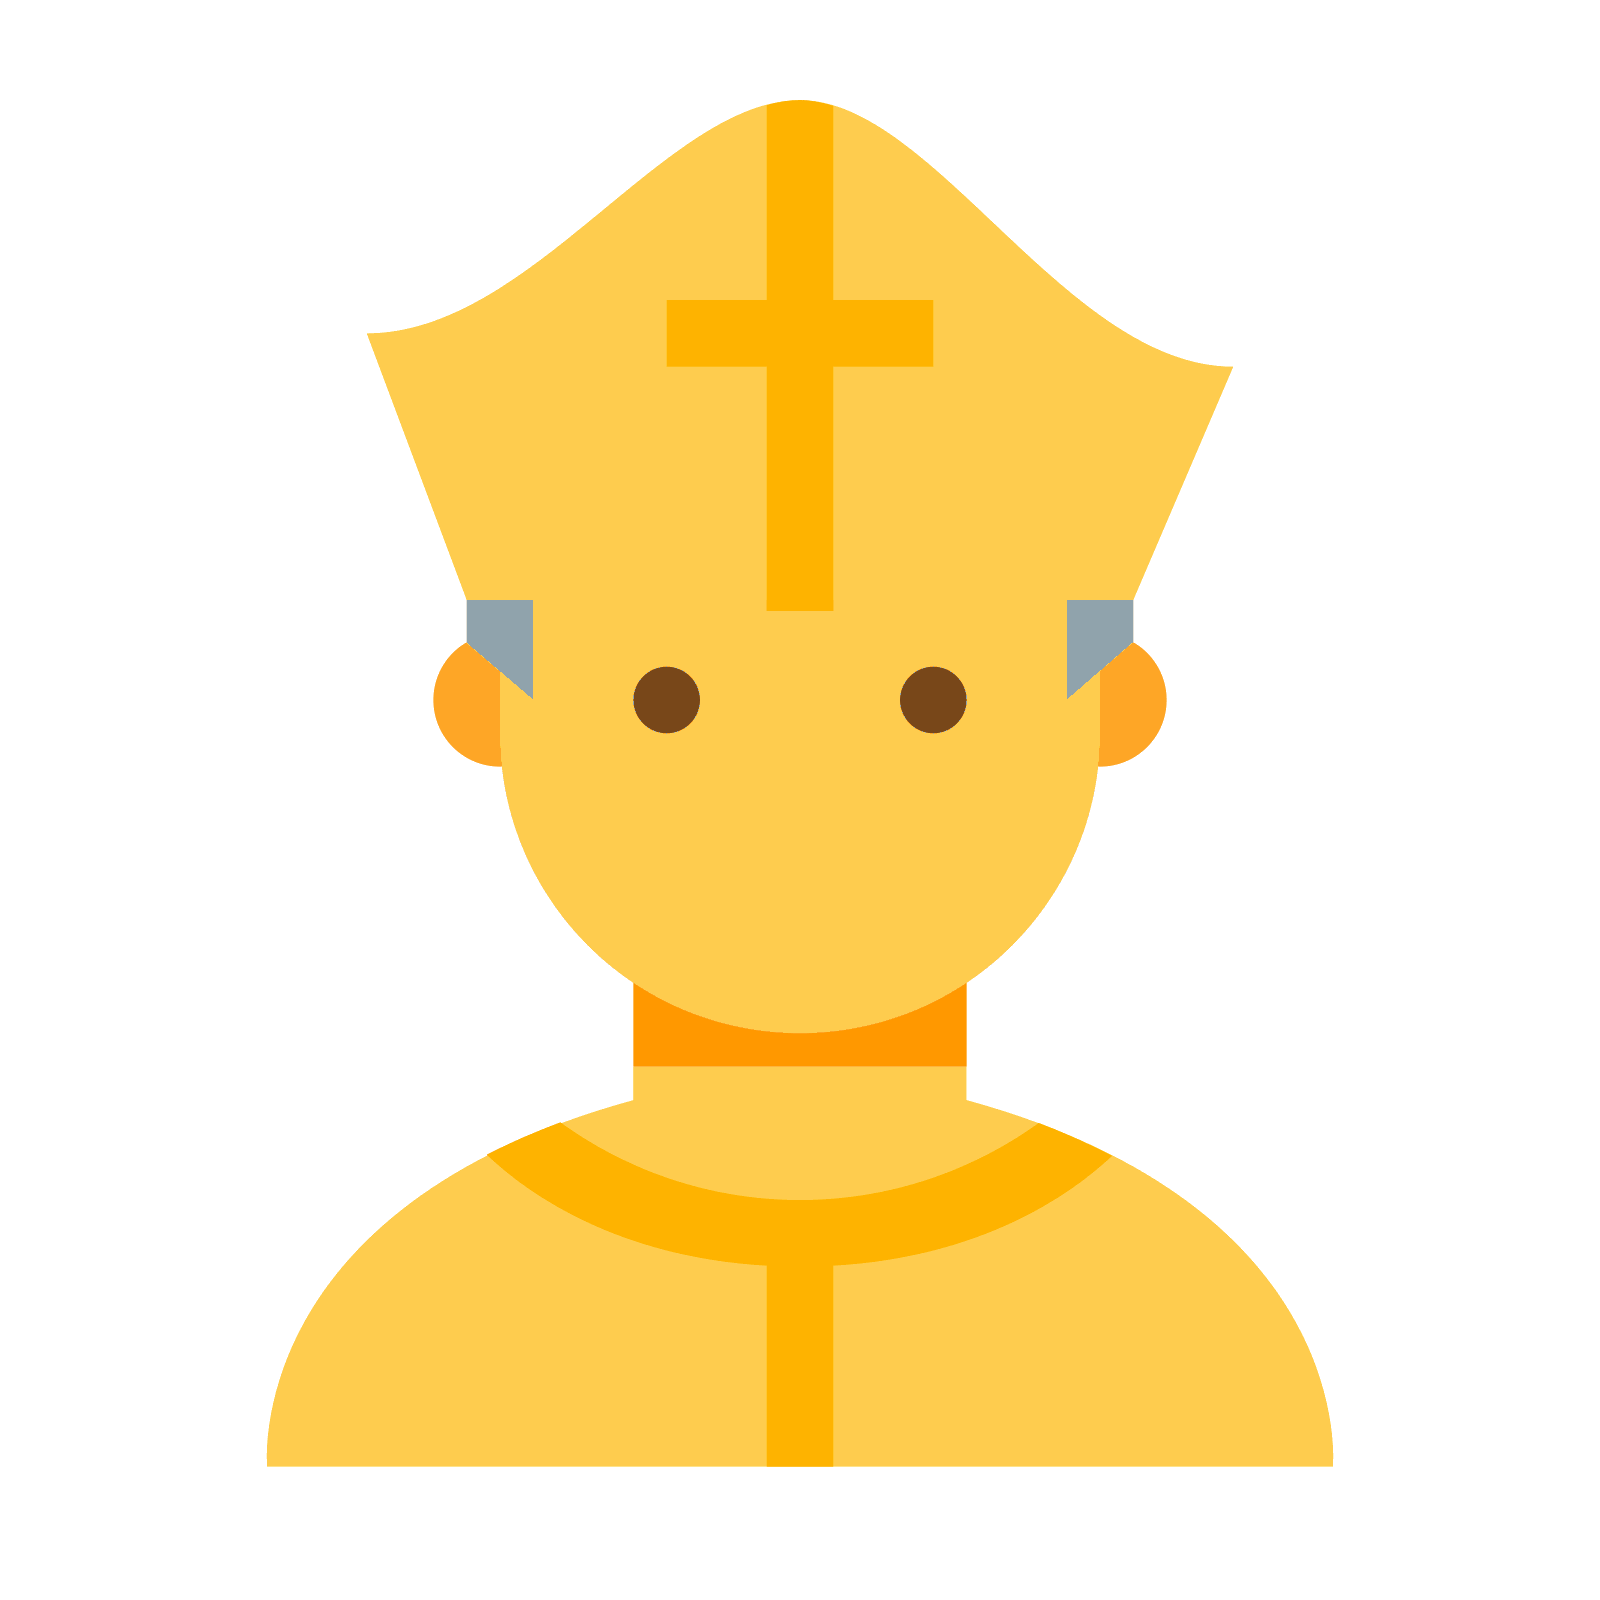 Pope hat png. Free icon download stock